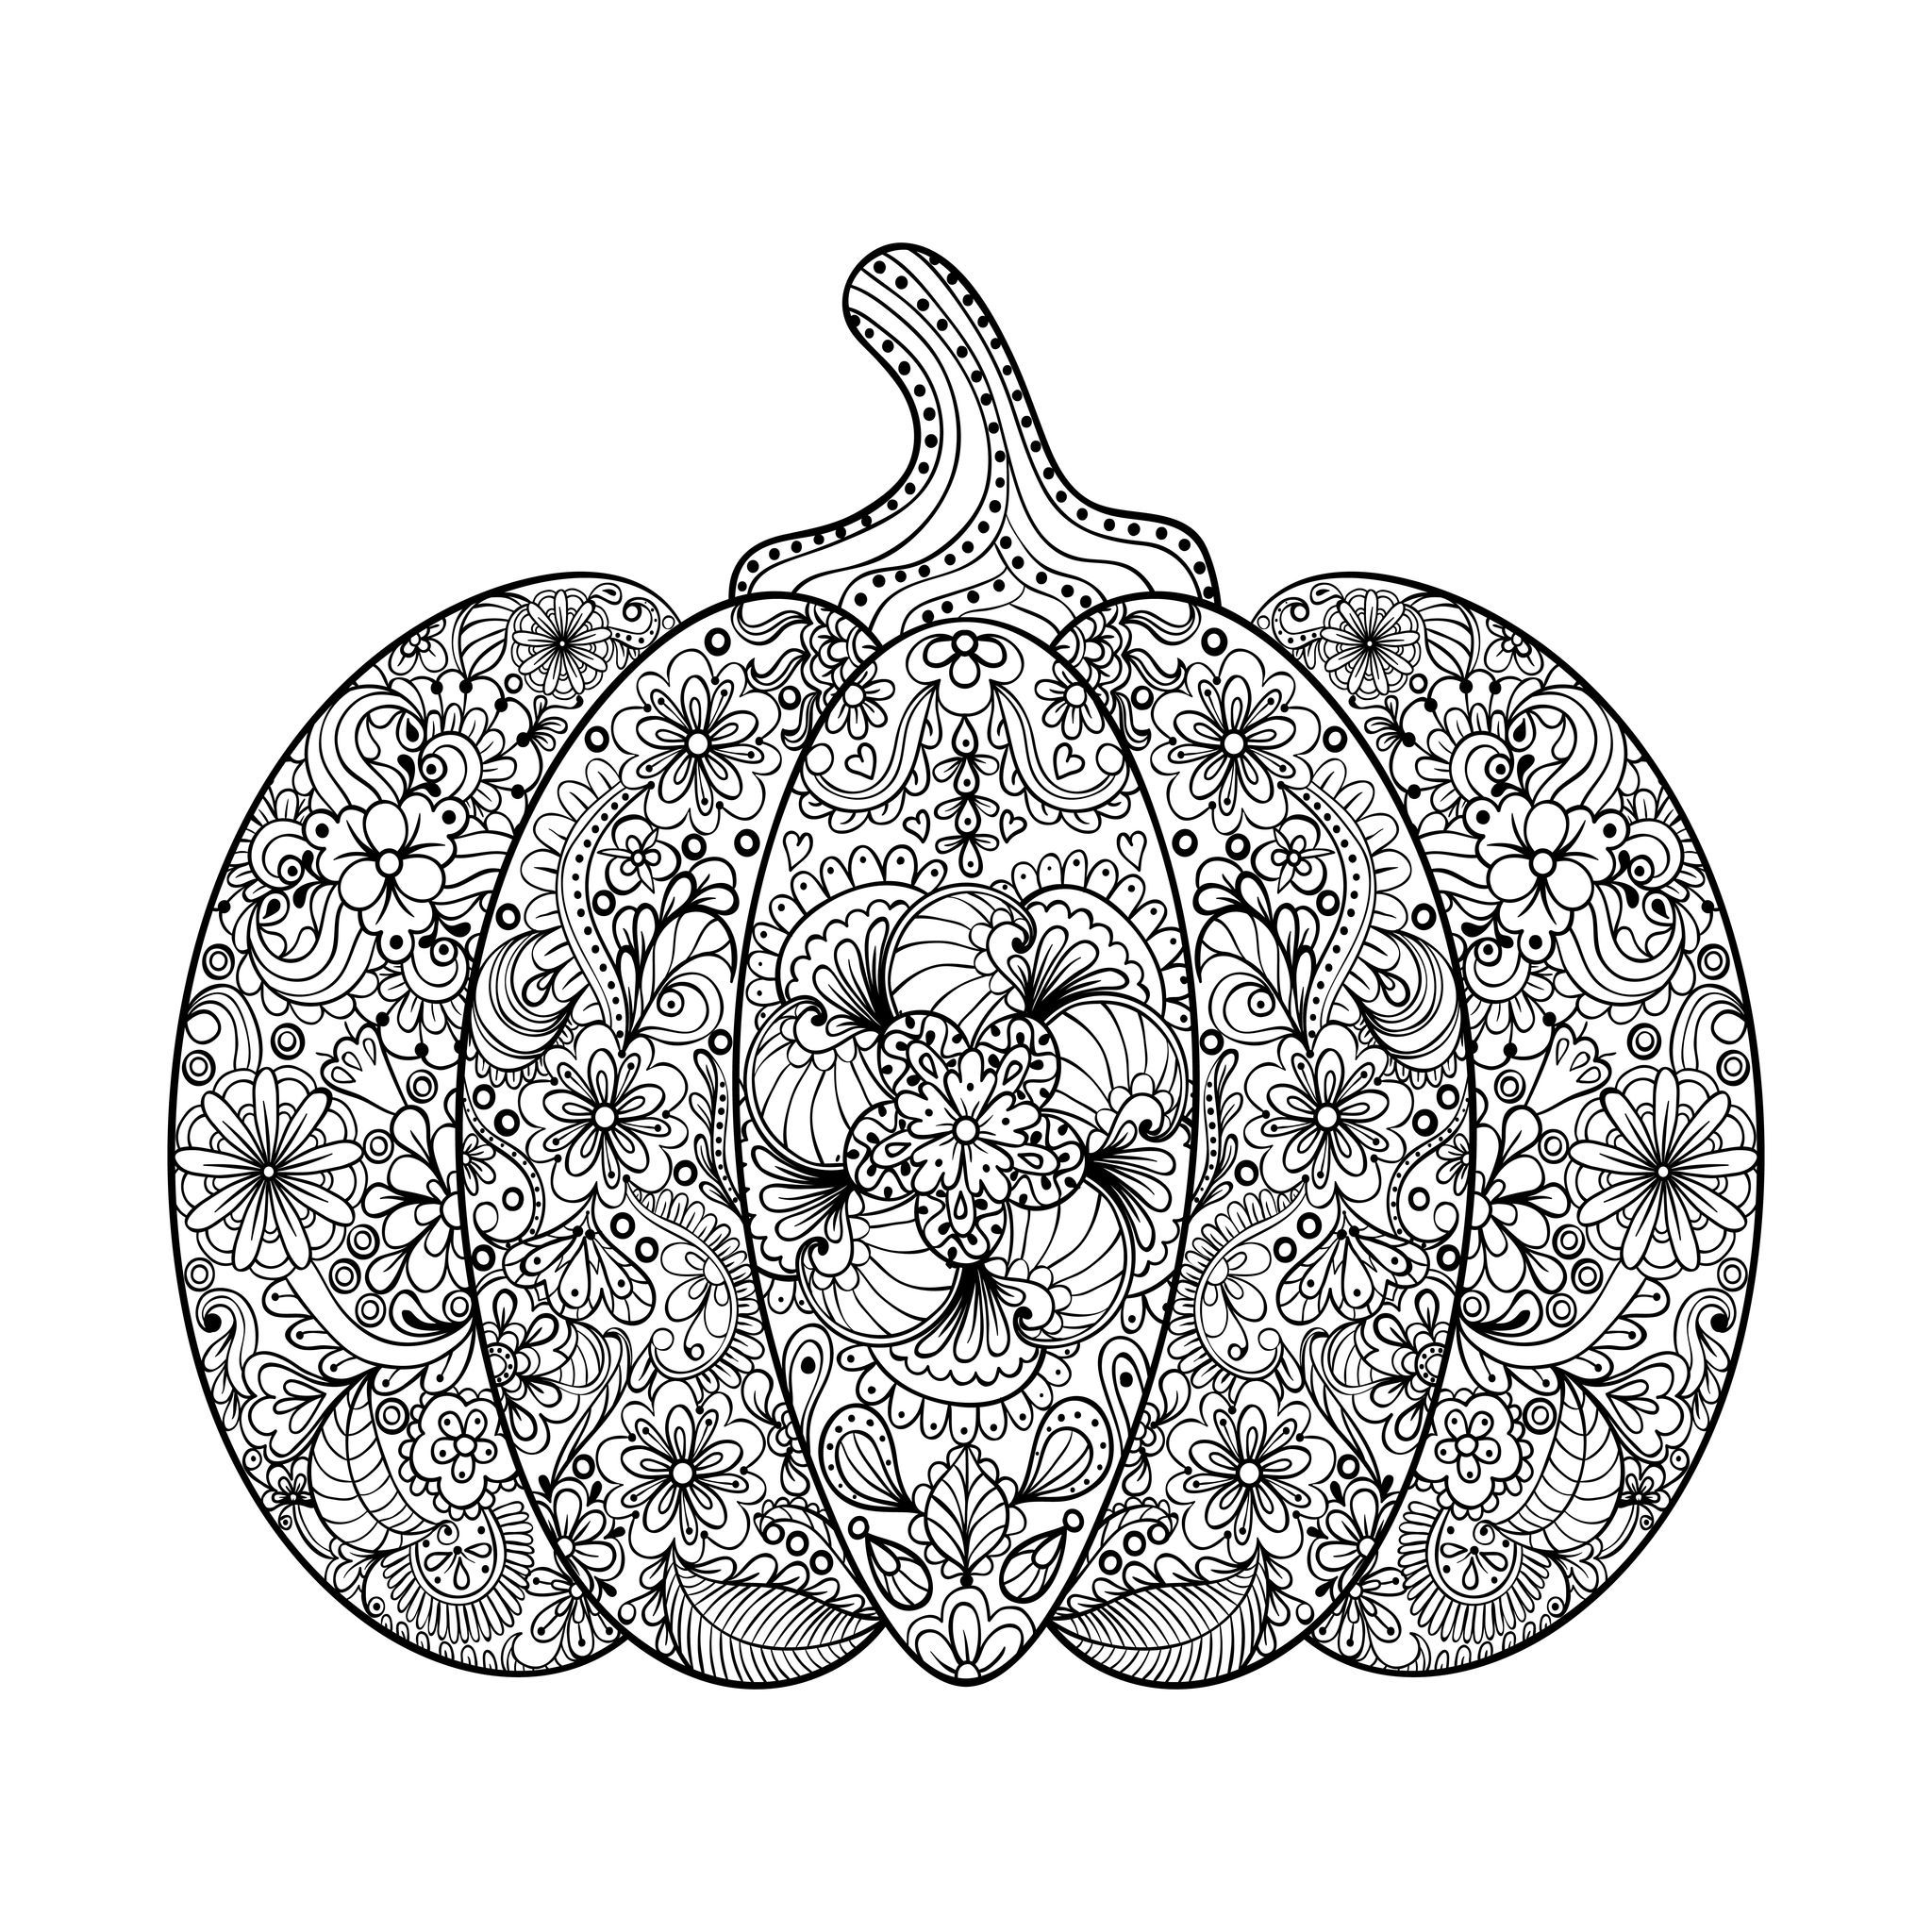 Pumpkin Drawing Patterns at GetDrawings.com | Free for personal use ...